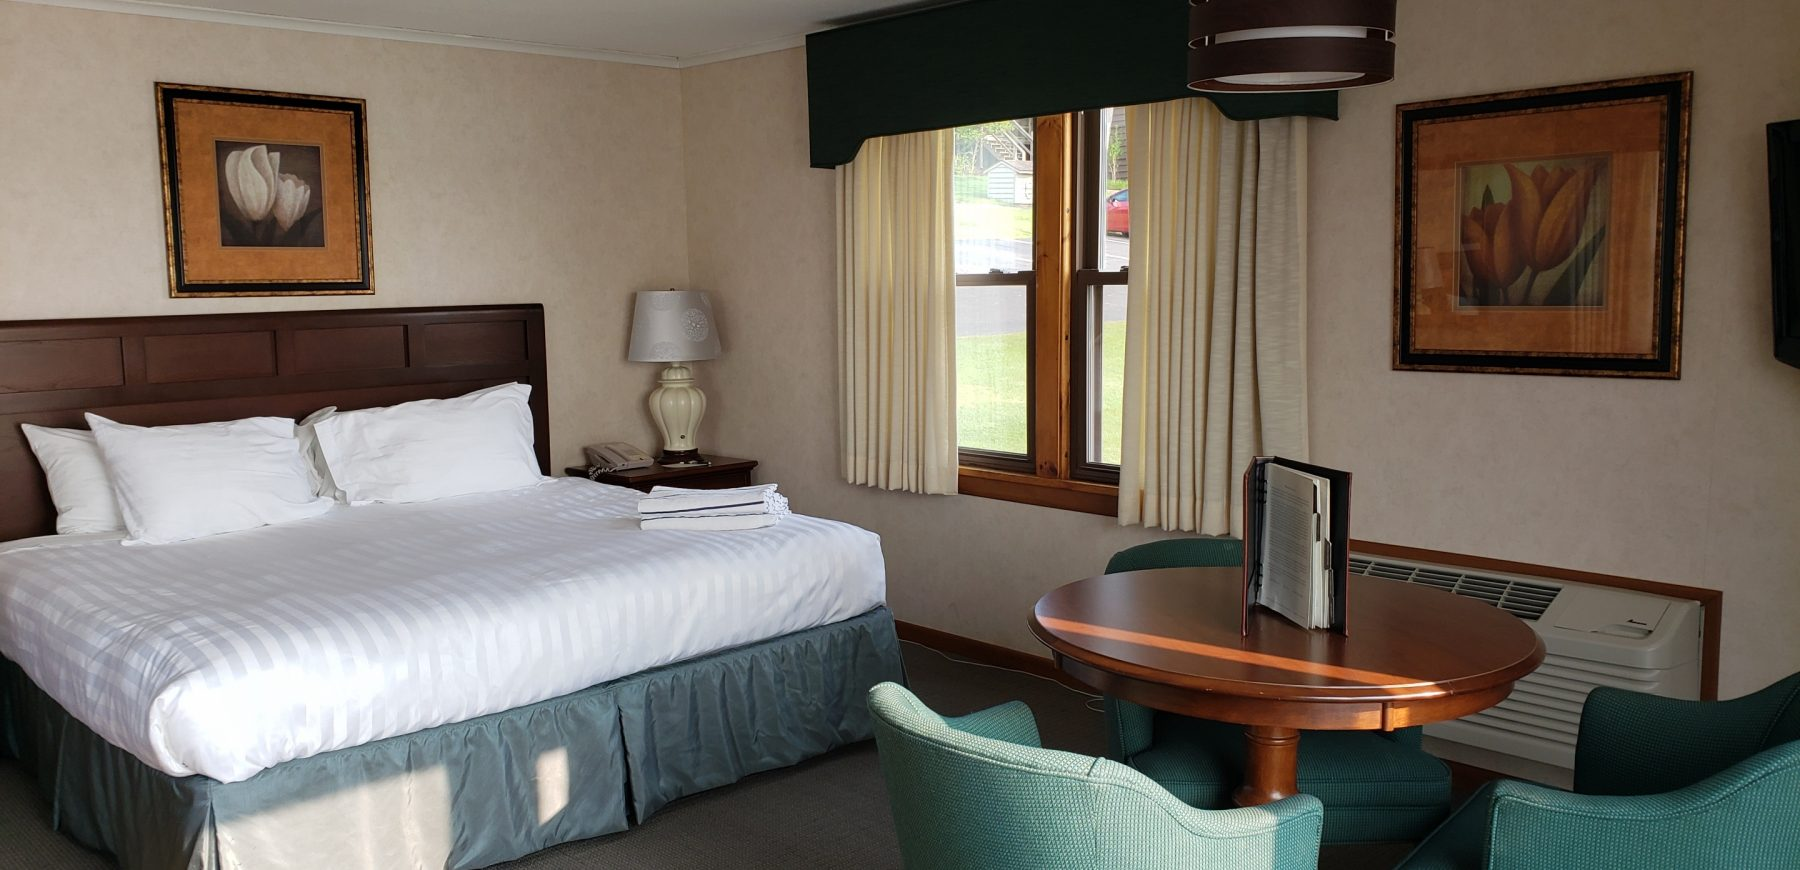 hotel bedroom with seating area